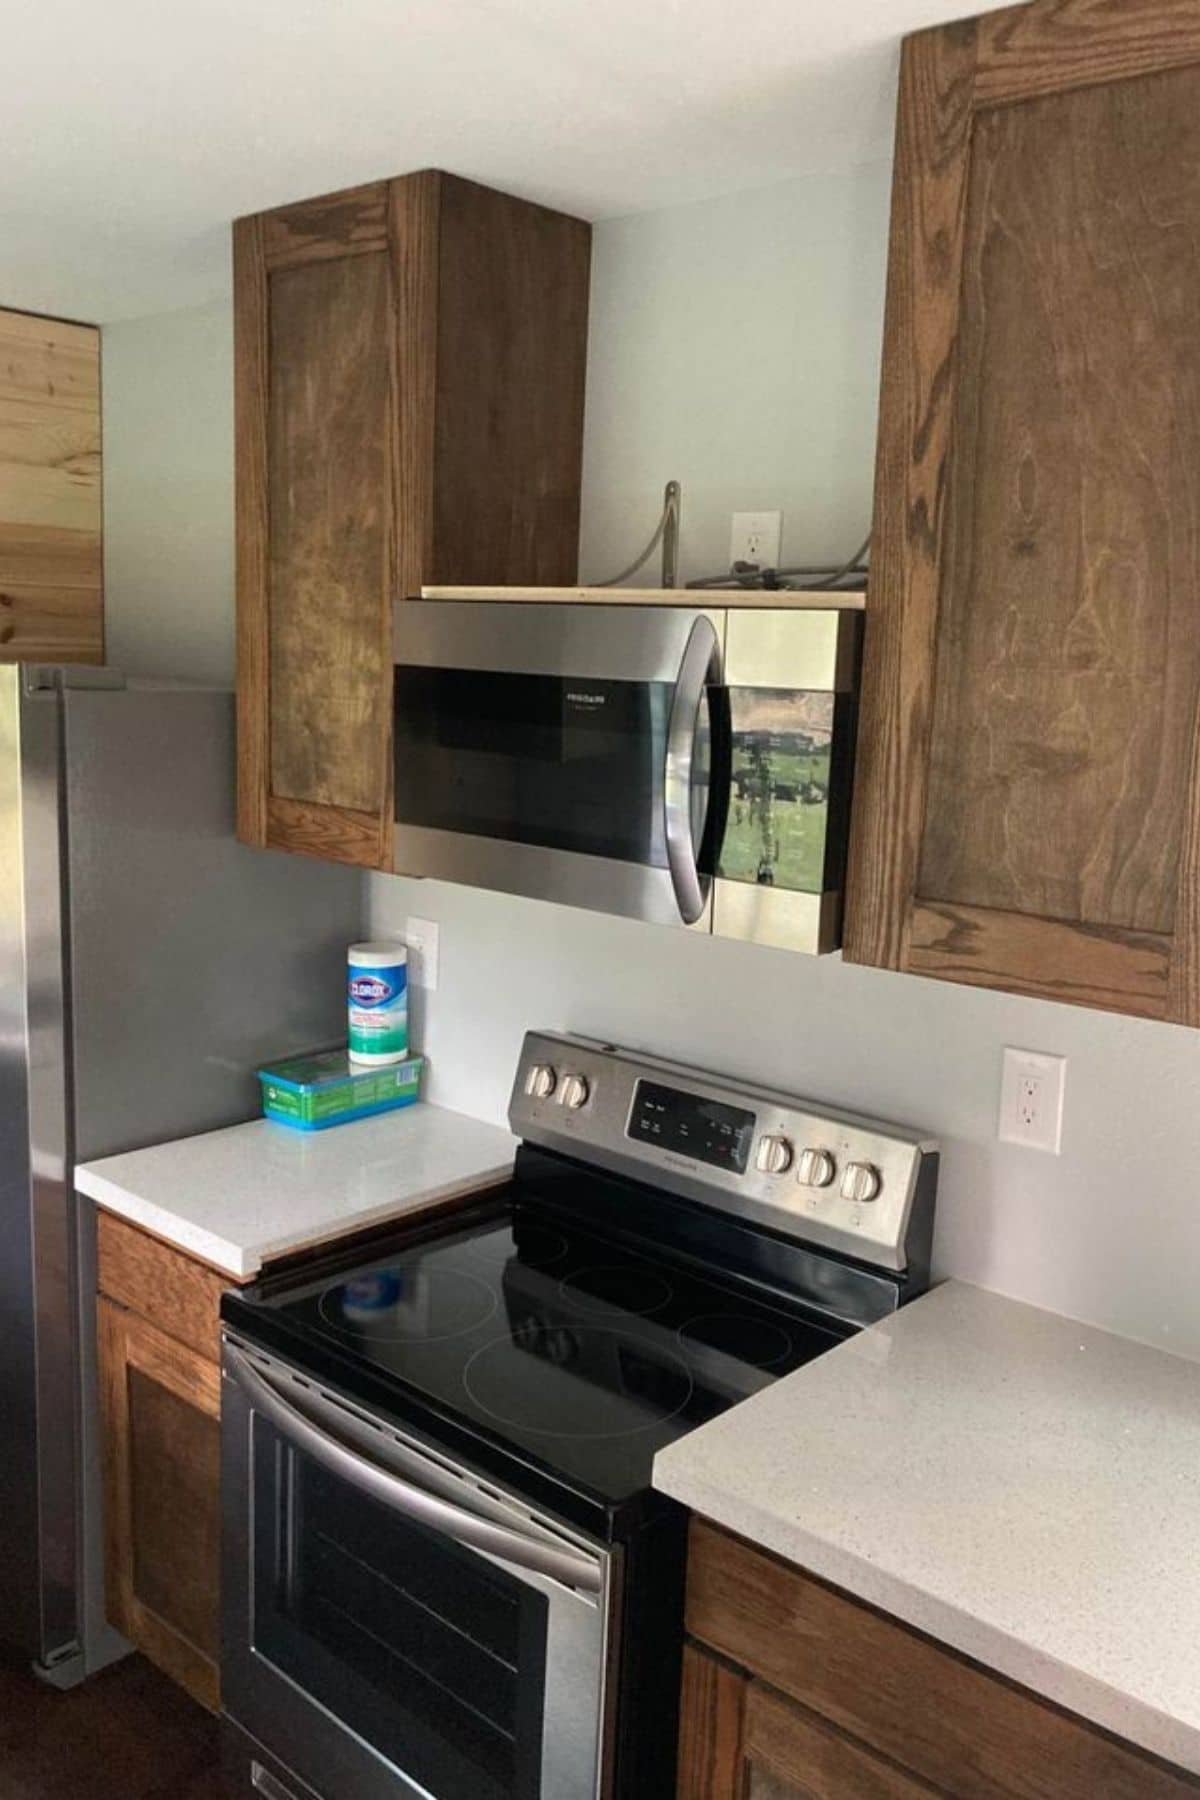 Stainless steel electric range in between white counters in kitchen with wood cabinets